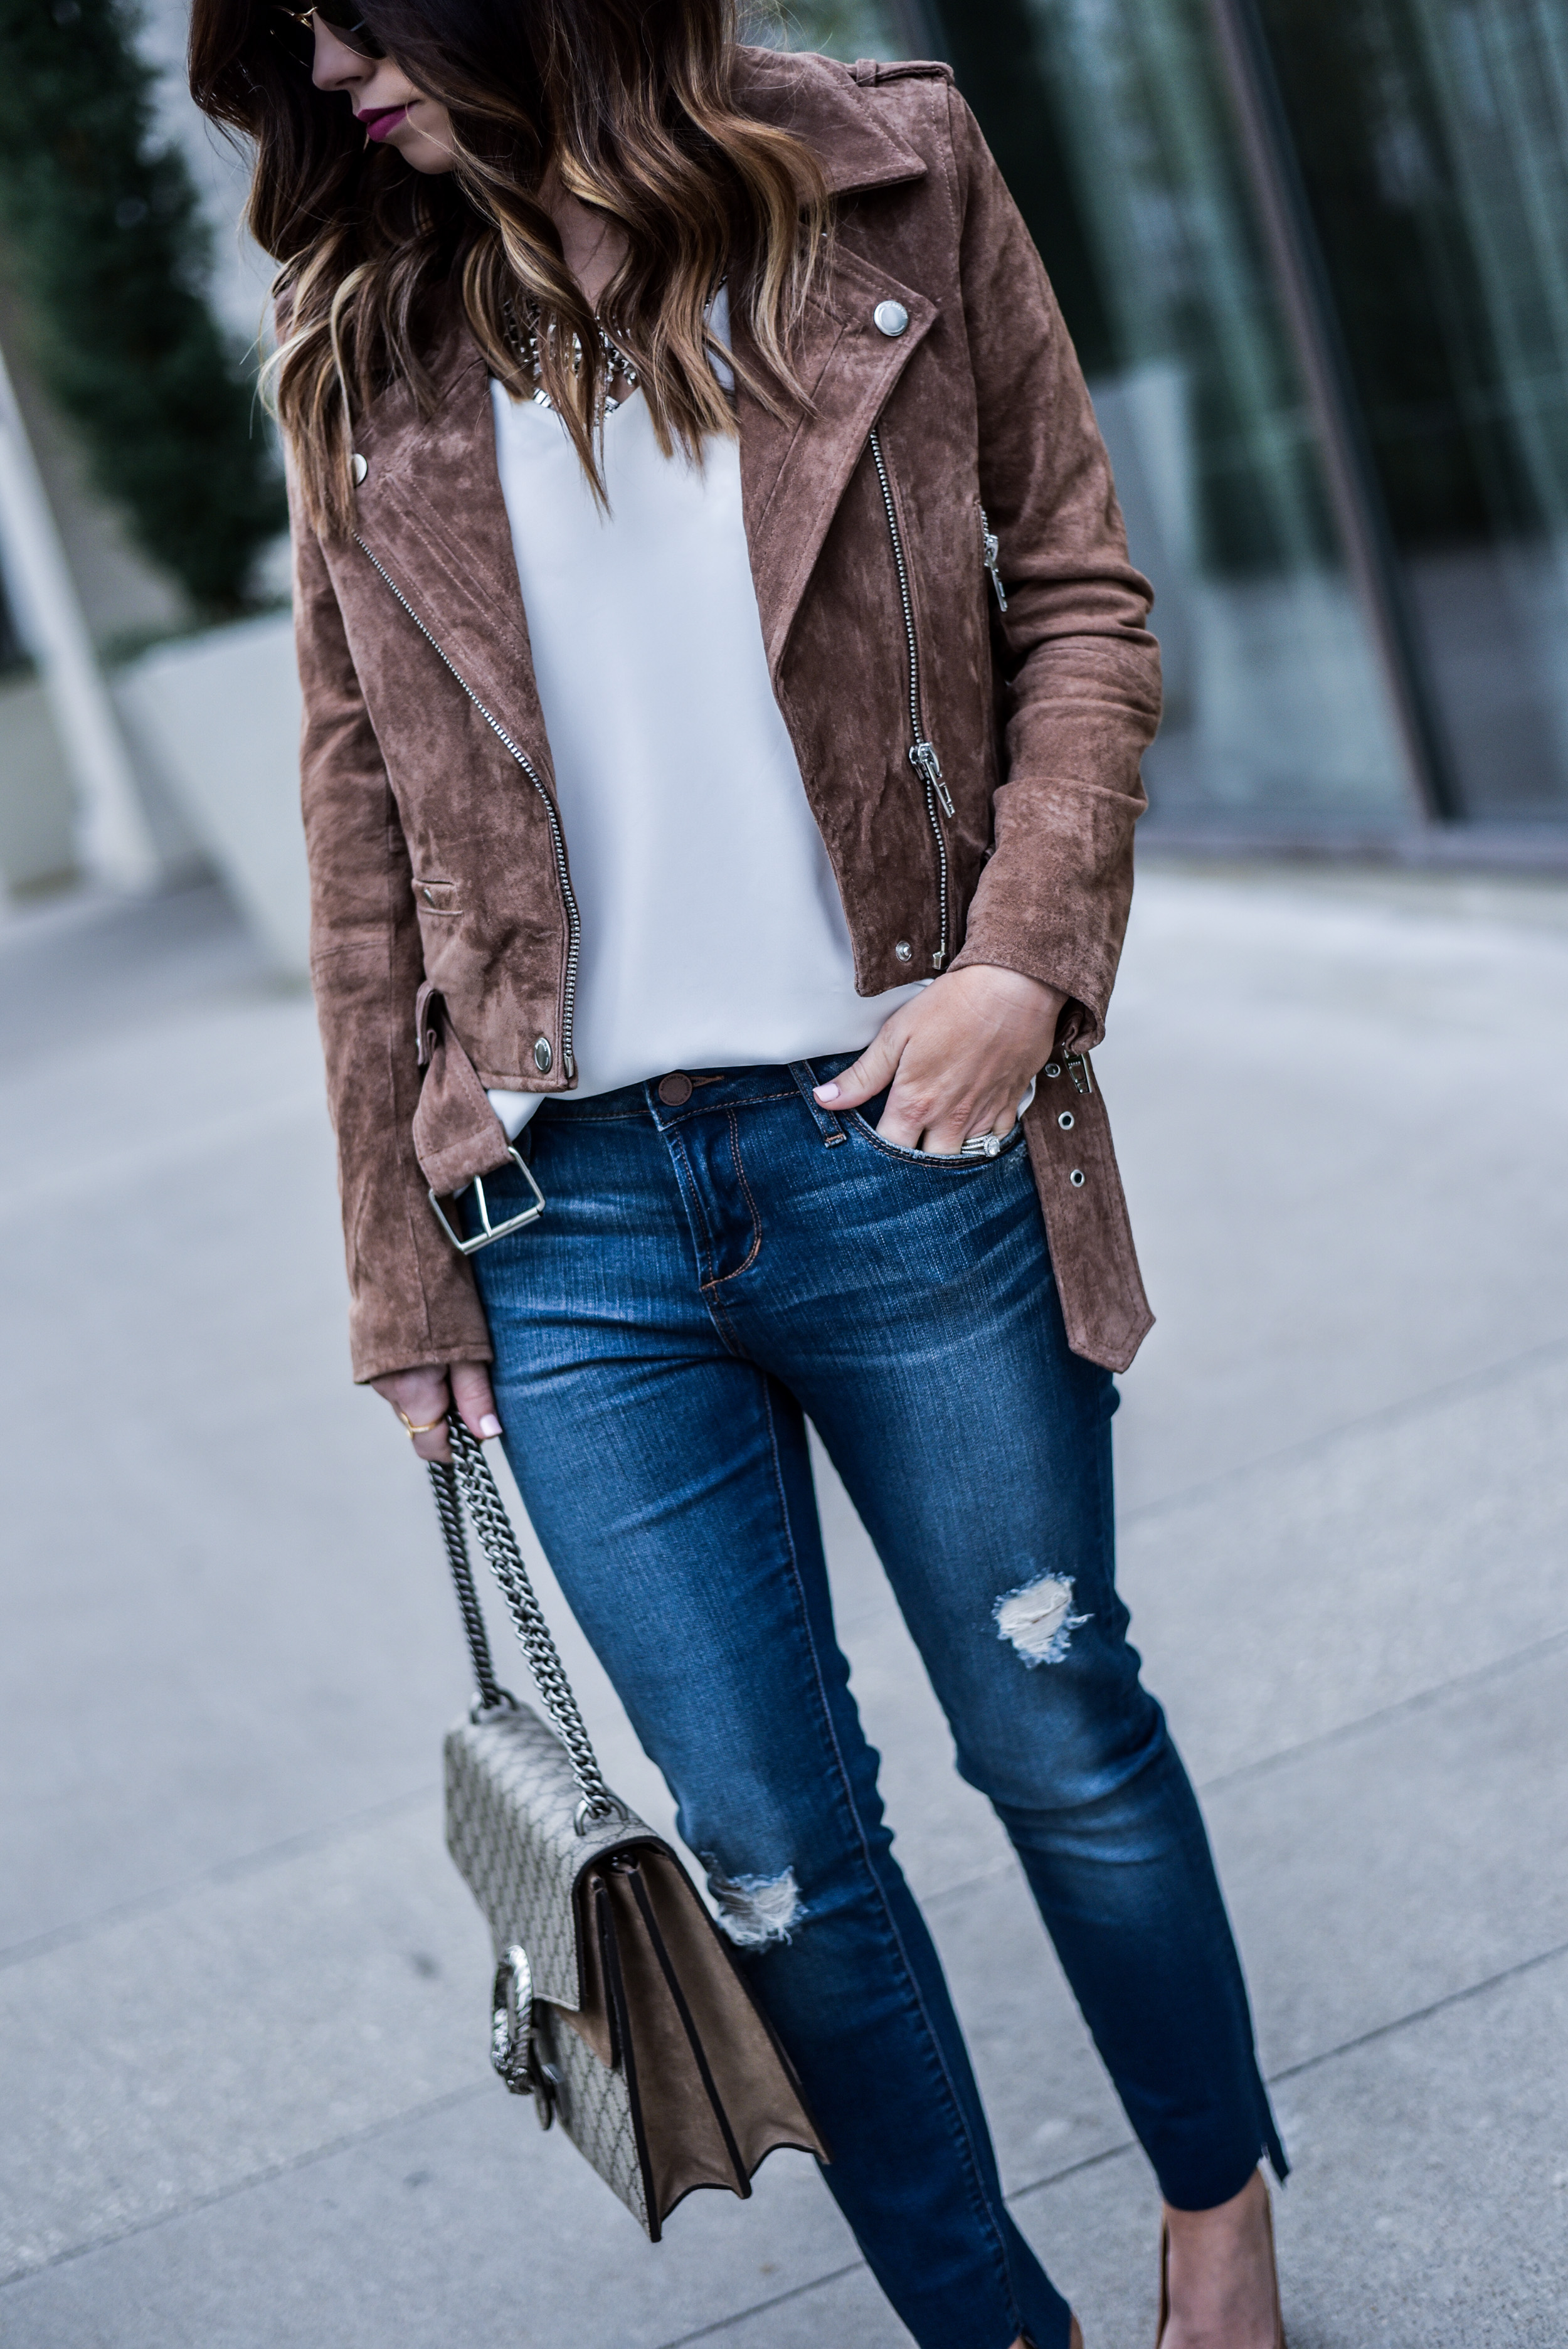 Style blogger Tiffany Jais of Flaunt and Center wearing a BLANKNYC suede moto jacket with Nordstrom jeans |